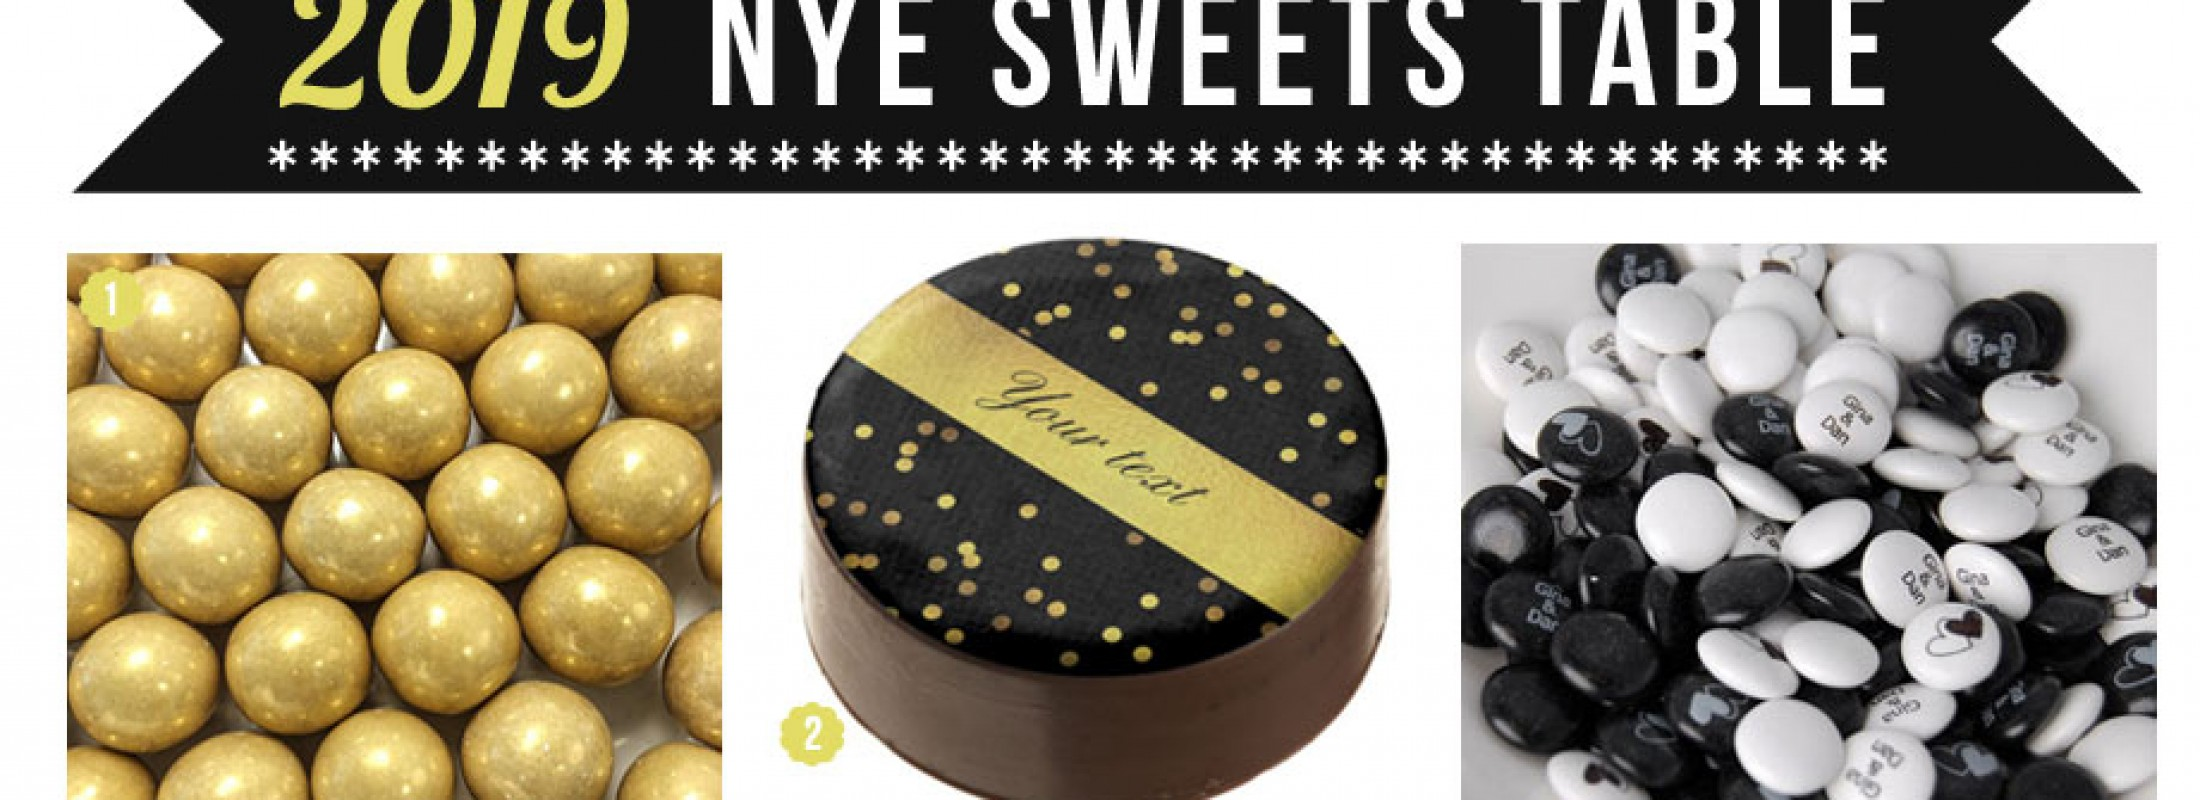 A Glamorous Candy to Ring In the New Year with the Sweetest Style!